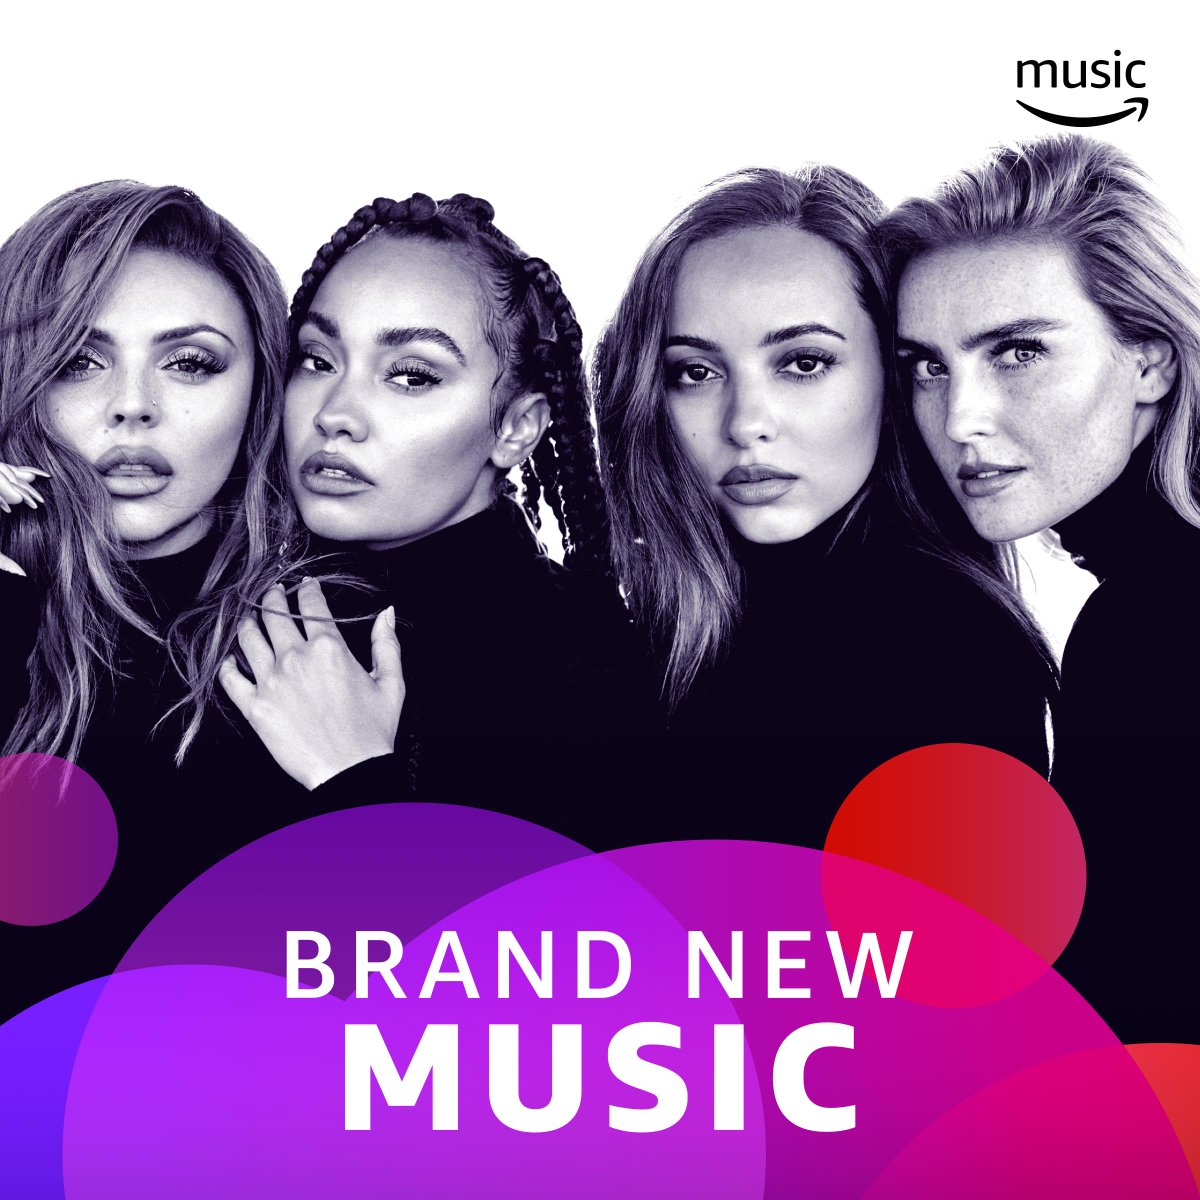 RT @LittleMix: Thanks for all the love on #WomanLikeMe today @AmazonMusic & @AmazonMusicUK ???? https://t.co/w76EwpDSa9 https://t.co/JEUmG0ogpm